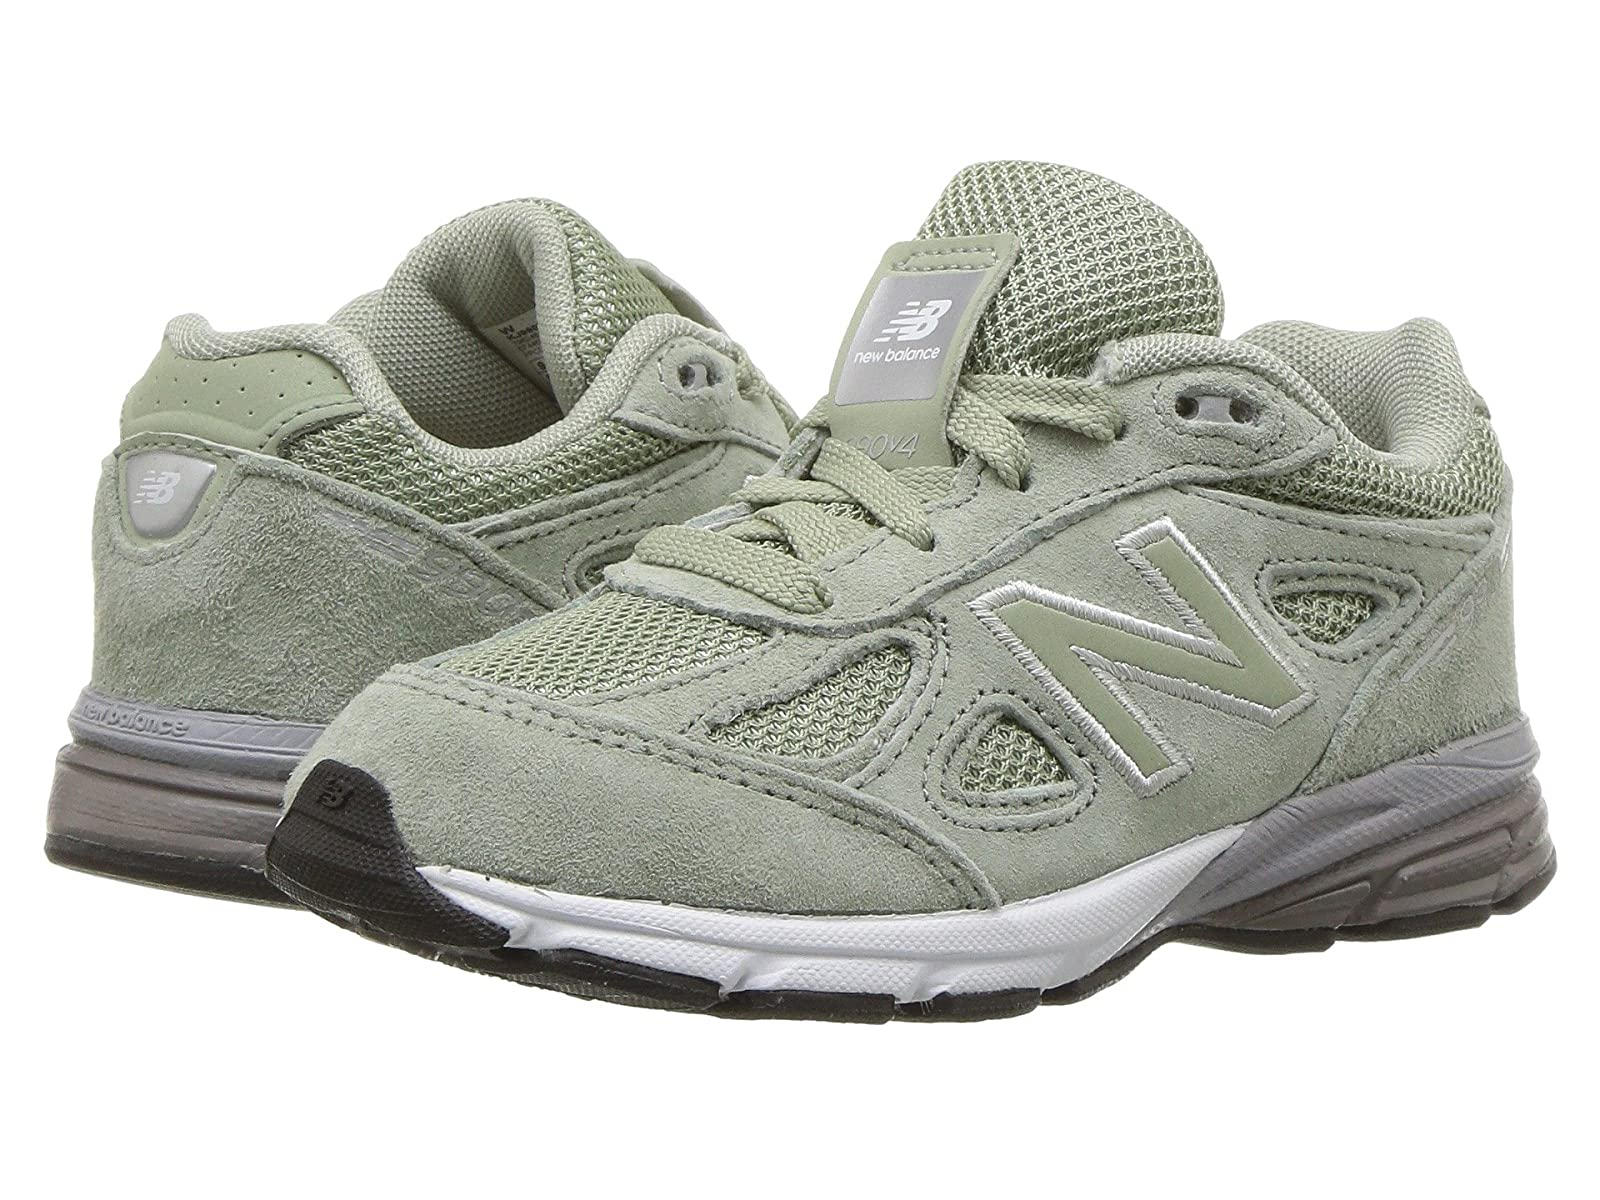 New Balance Kids KJ990v4I (Infant/Toddler)Atmospheric grades have affordable shoes